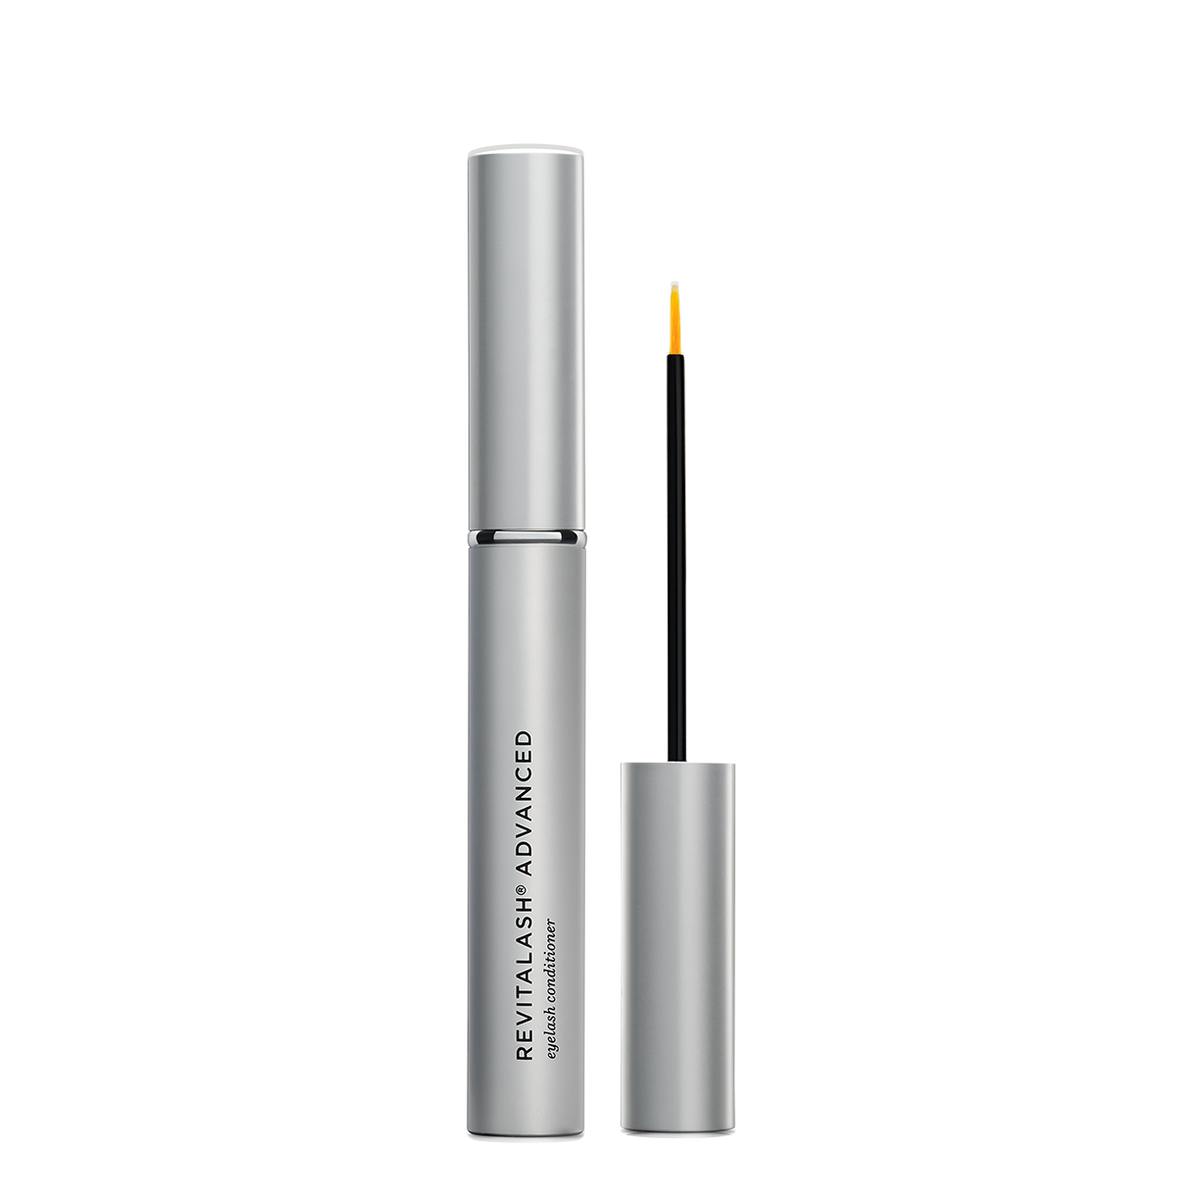 REVITALASH® ADVANCED EYELASH CONDITIONER - VIPPESERUM